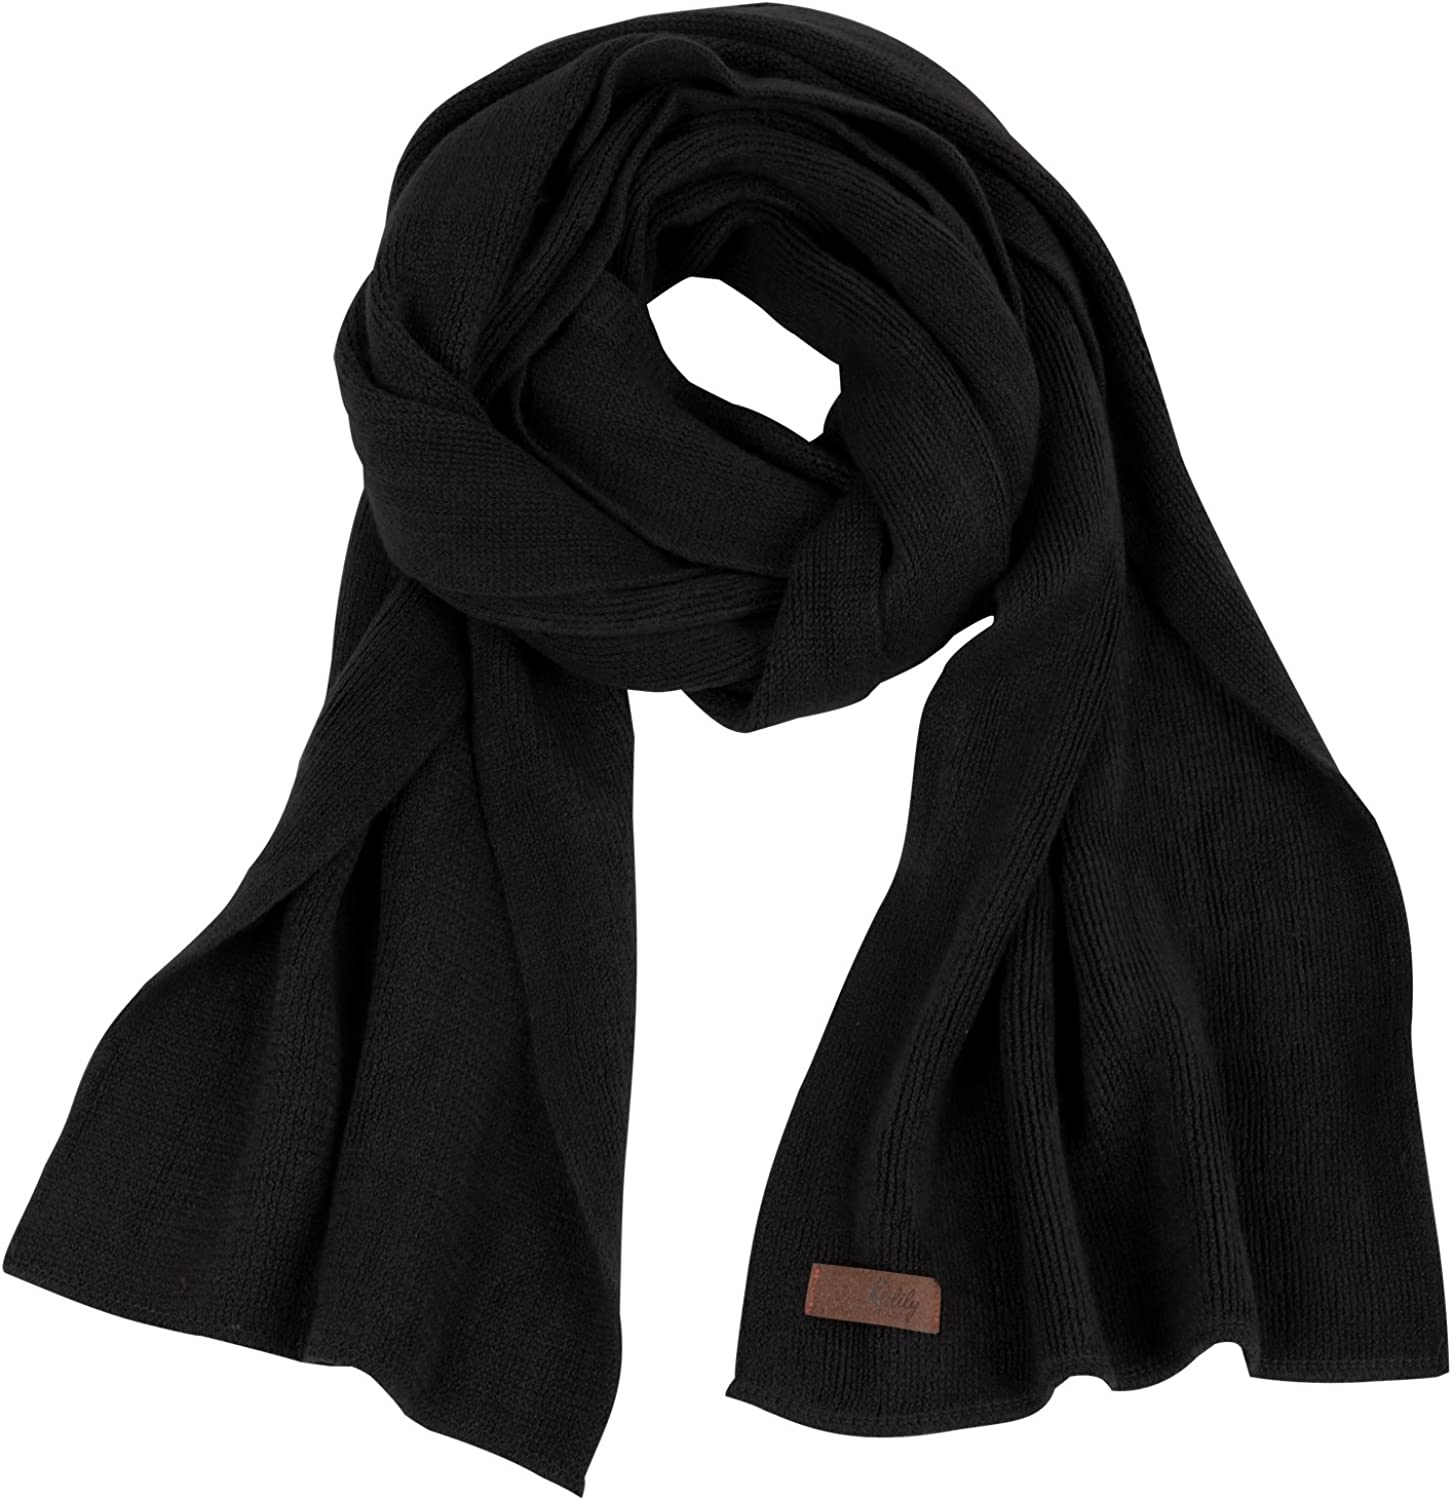 ililily Solid Color Neck Warmer Wide Lightweight Long Scarf scarf-049-2